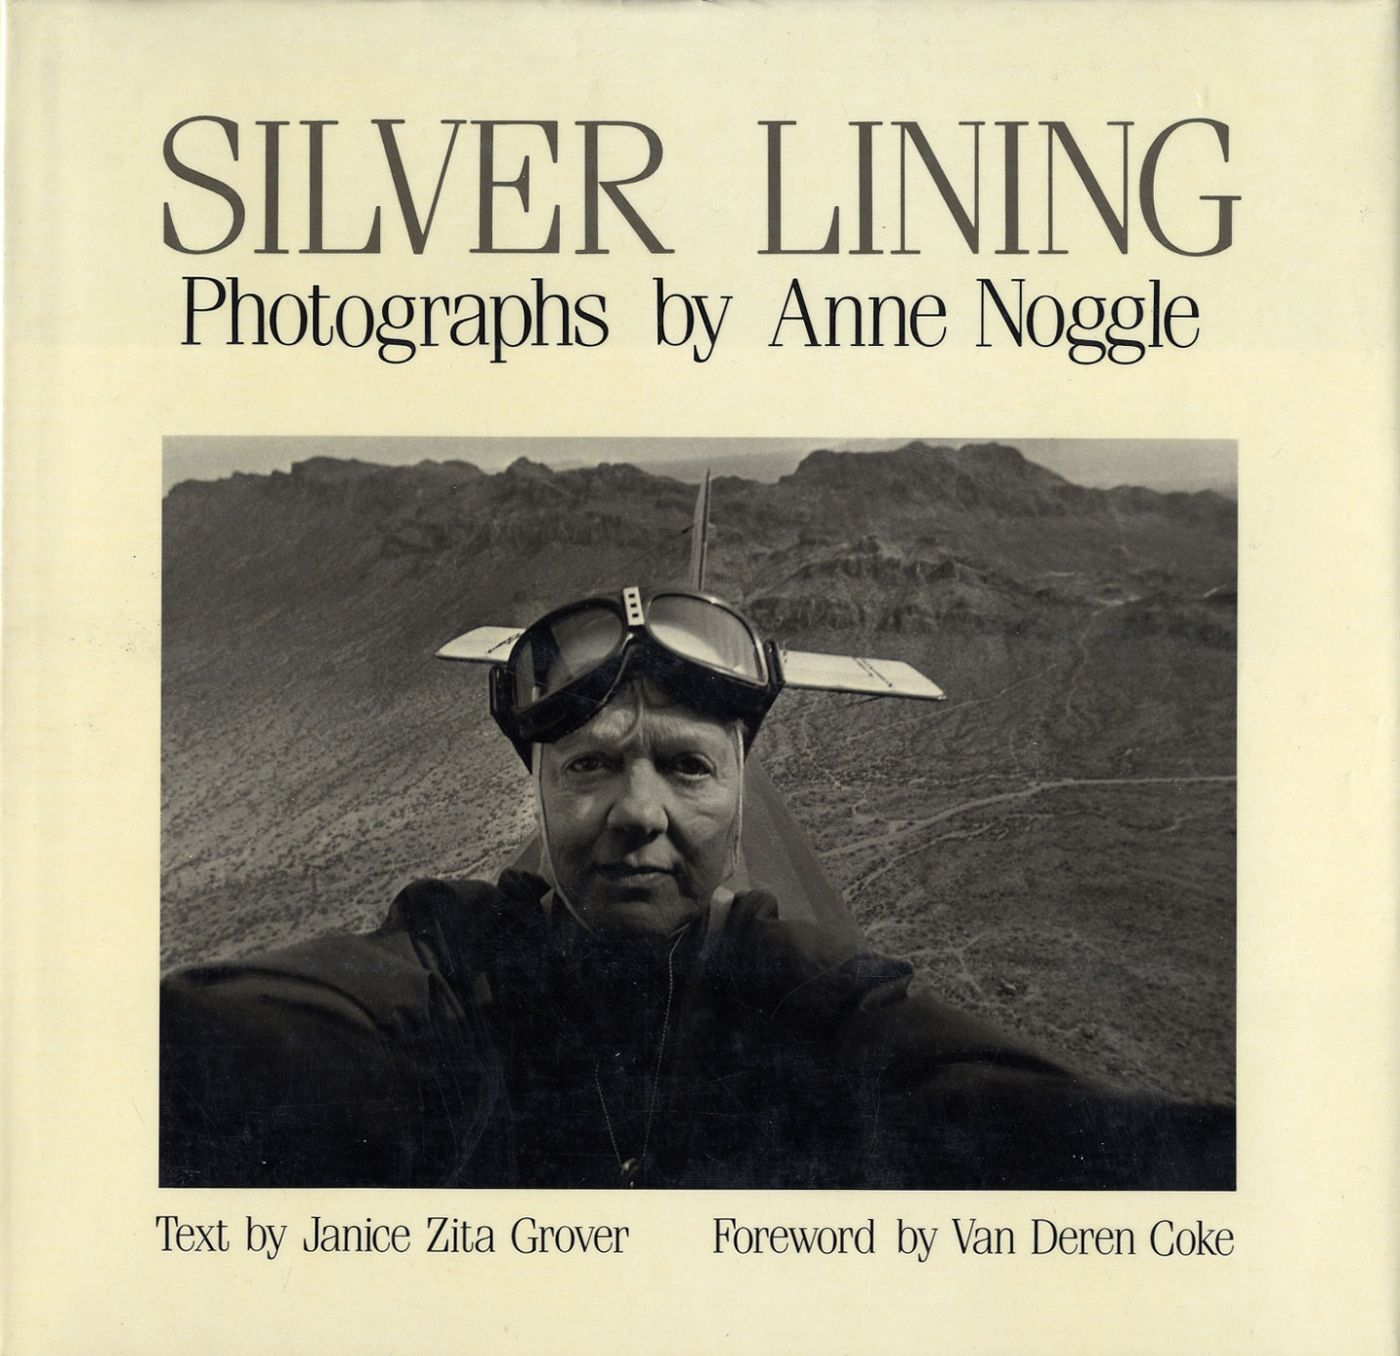 Silver Lining: Photographs by Anne Noggle [SIGNED]